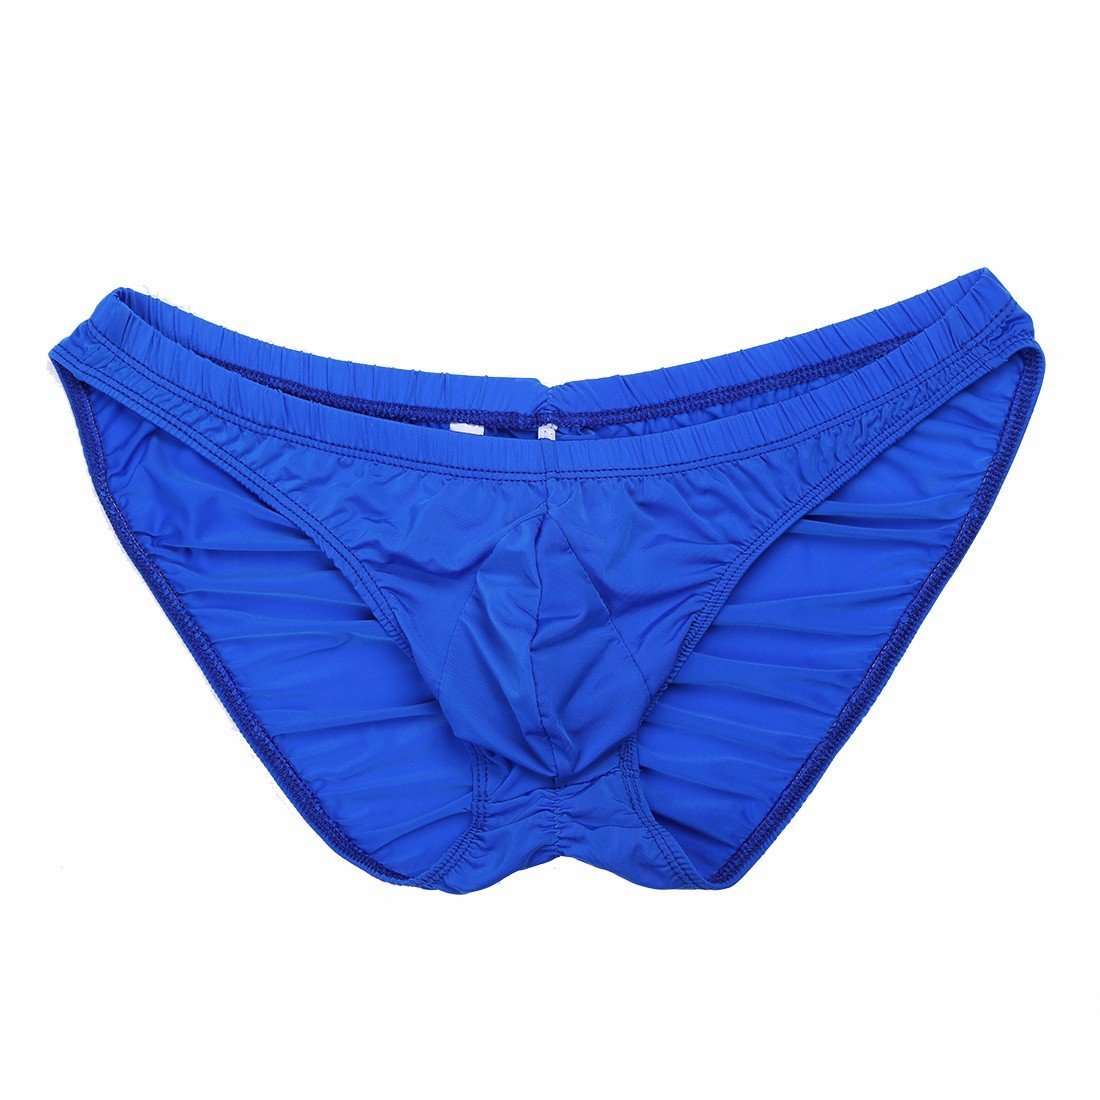 FEESHOW Men's Silky Bikini Briefs Bulge Pouch Underwear Swimwear Ruched Back Blue One Size